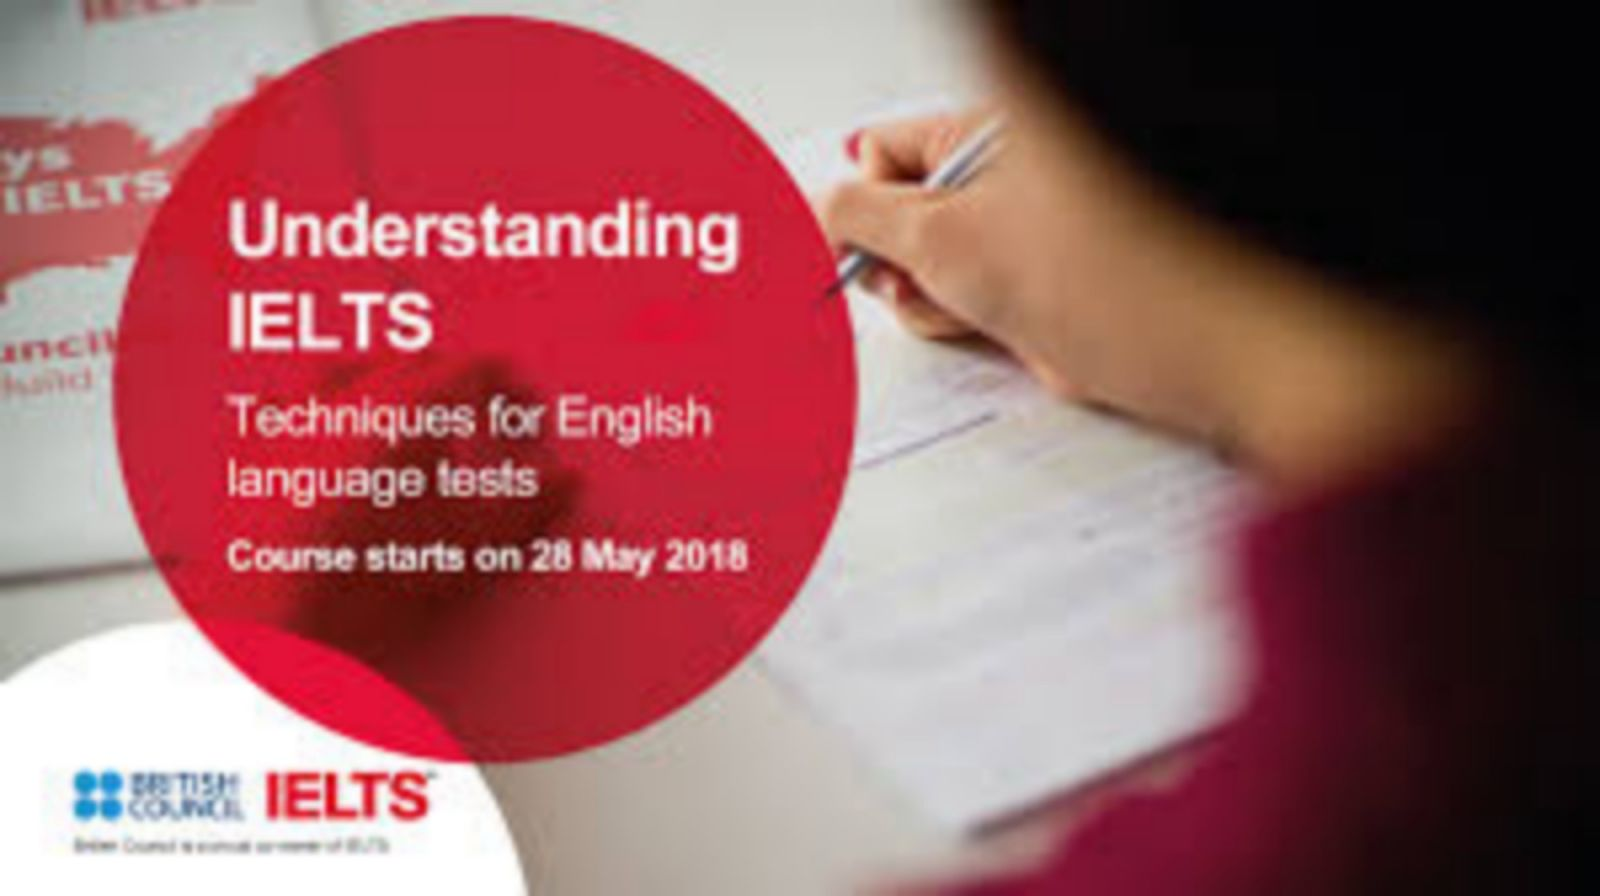 BUY REAL IELTS CERTIFICATE WITHOUT EXAMS,BUY REGISTERED PTE  CERTIFICATE ONLINE WITHOUT EXAMS,WHERE TO GET IELTS/PTE QUESTION PAPERS